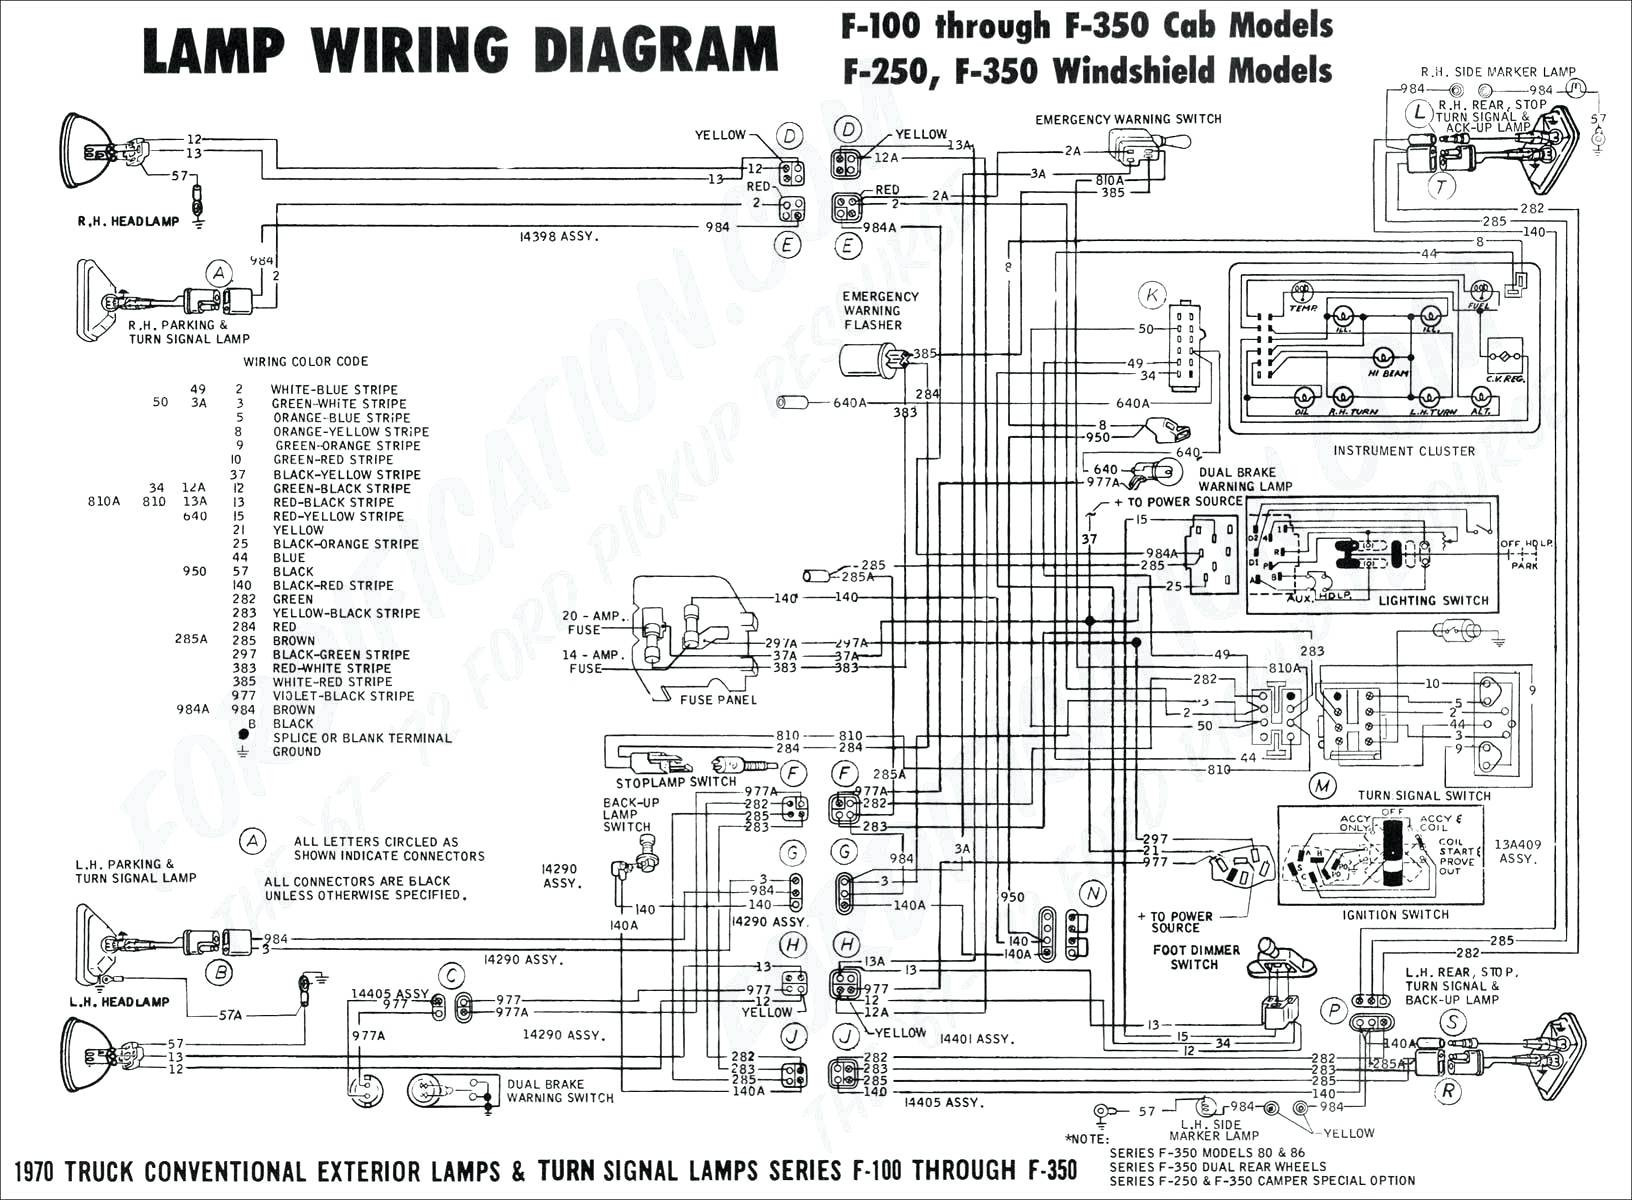 2001 f250 trailer wiring diagram Collection-2005 Chevy Silverado Trailer Wiring Diagram Ford Resize Gmc Ideas With F250 Plug 9 17-i